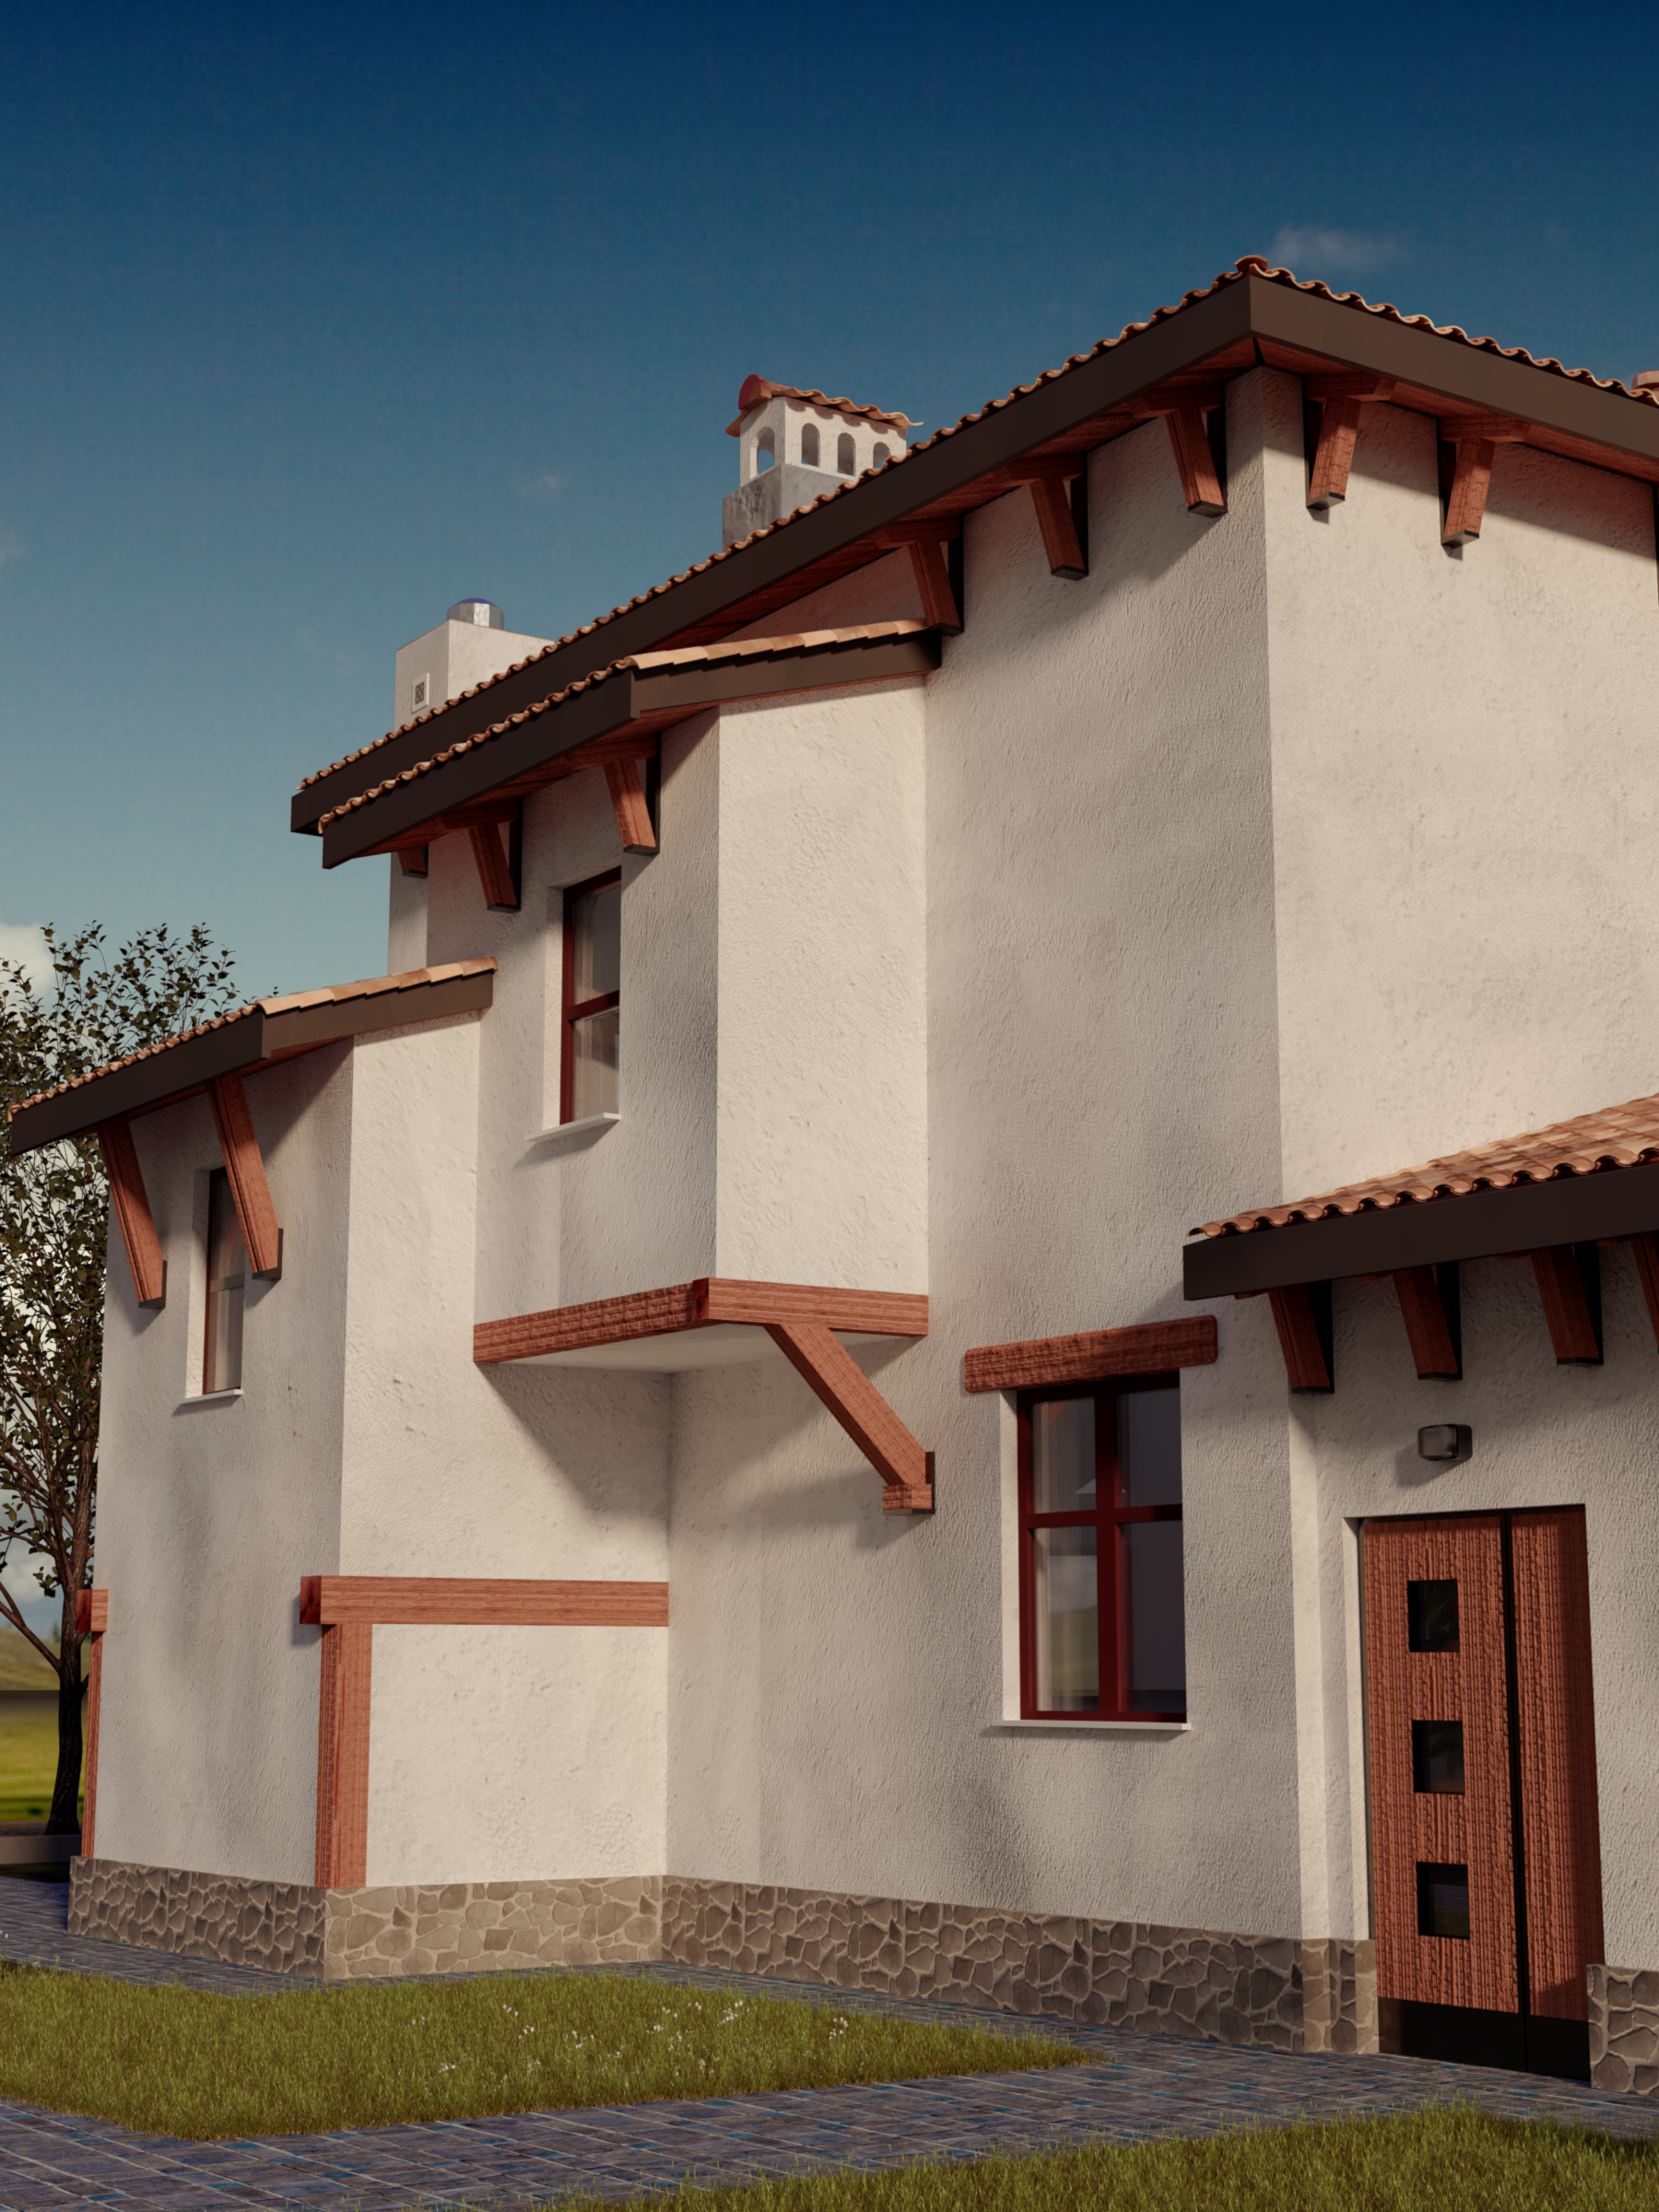 Mediterranean style house project with terraces with panoramic windows, view 9